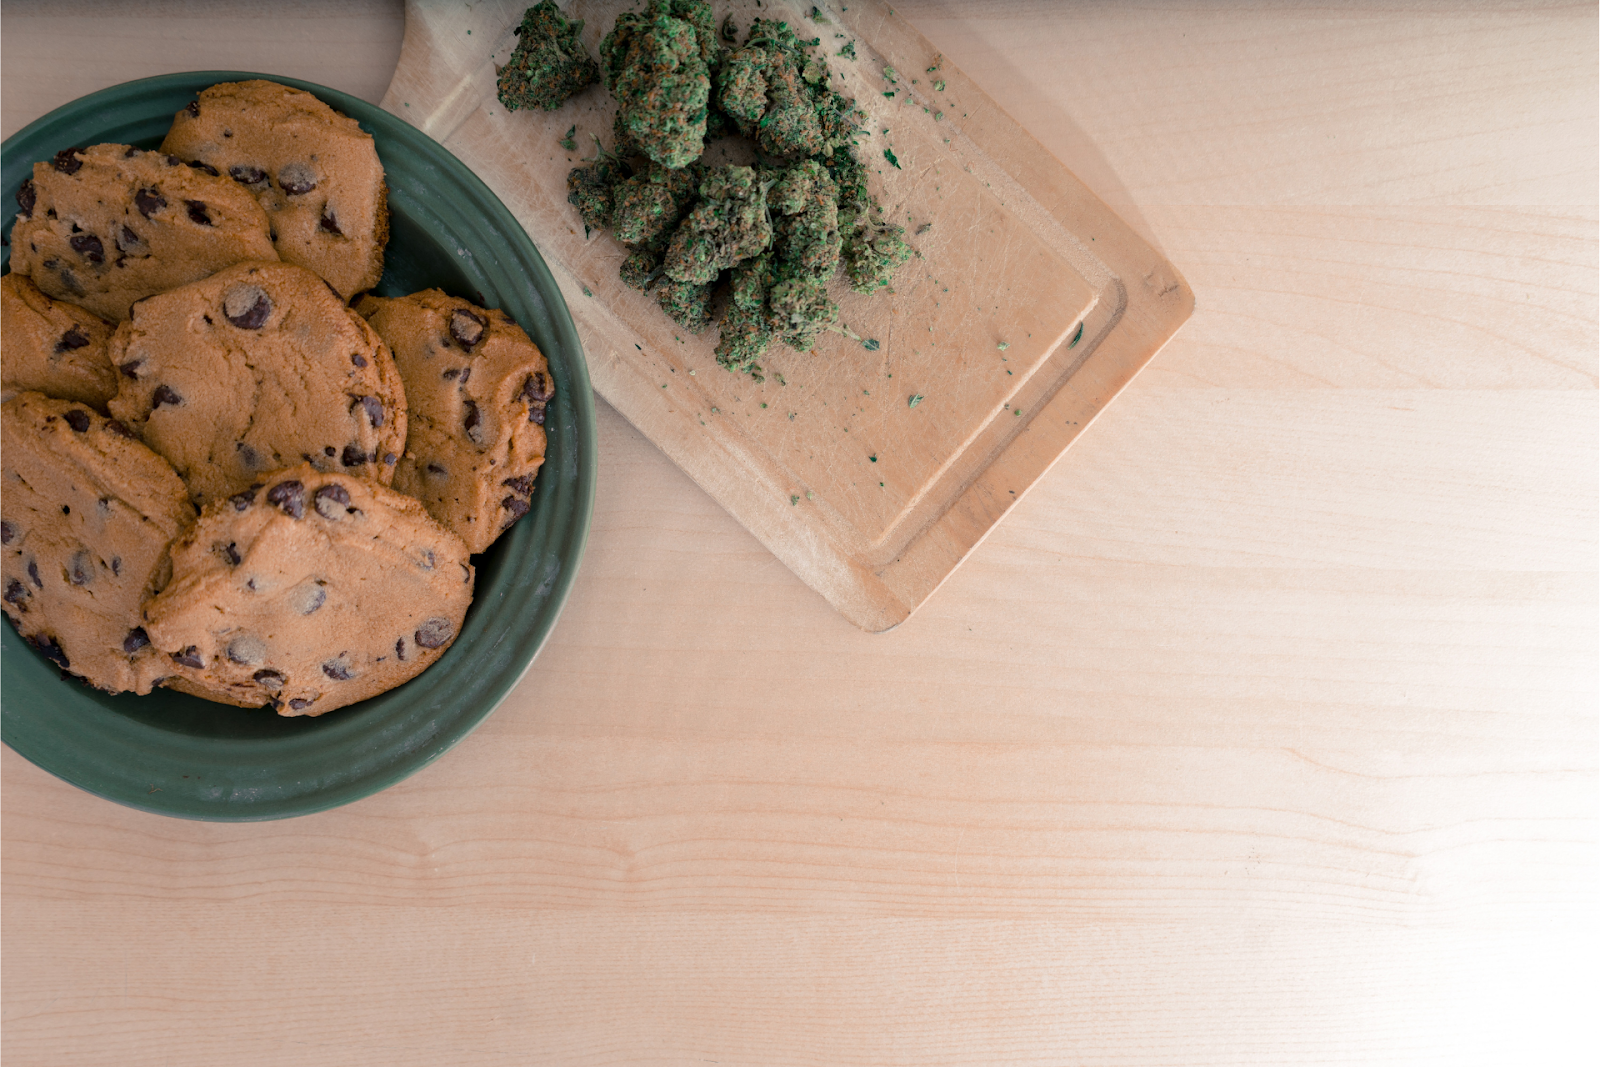 Chocolate chip cookies made from cannabis